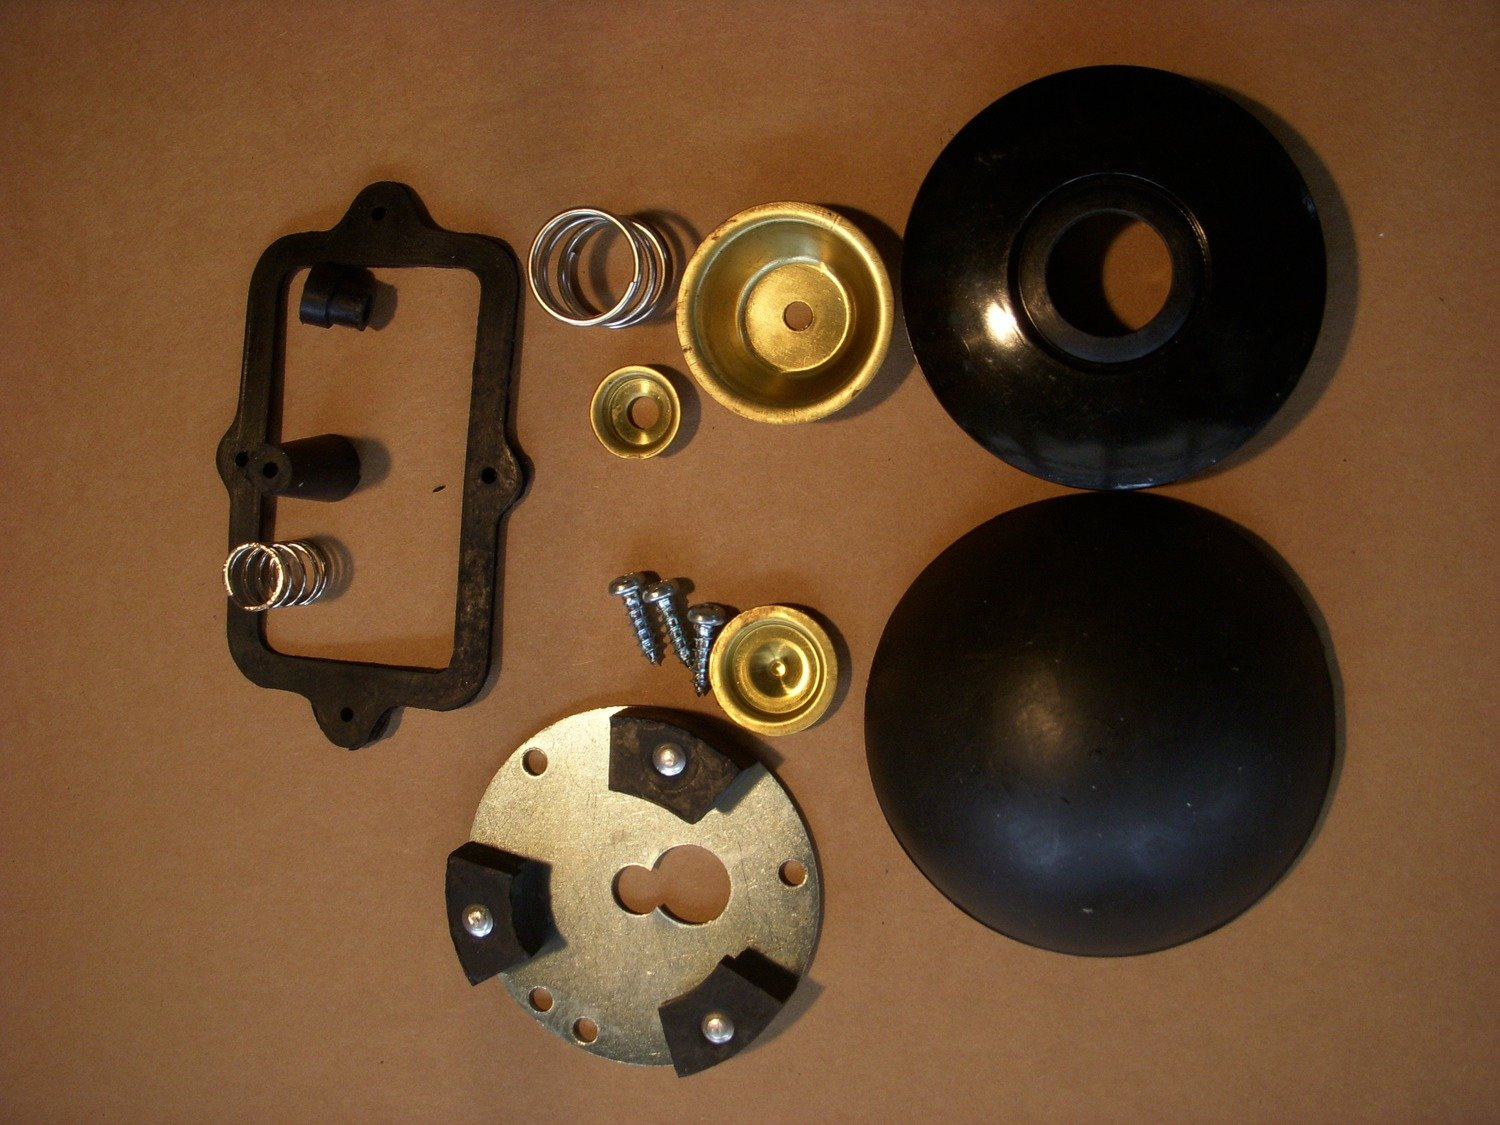 Horn button kit for 2.5 ton and 5 ton trucks